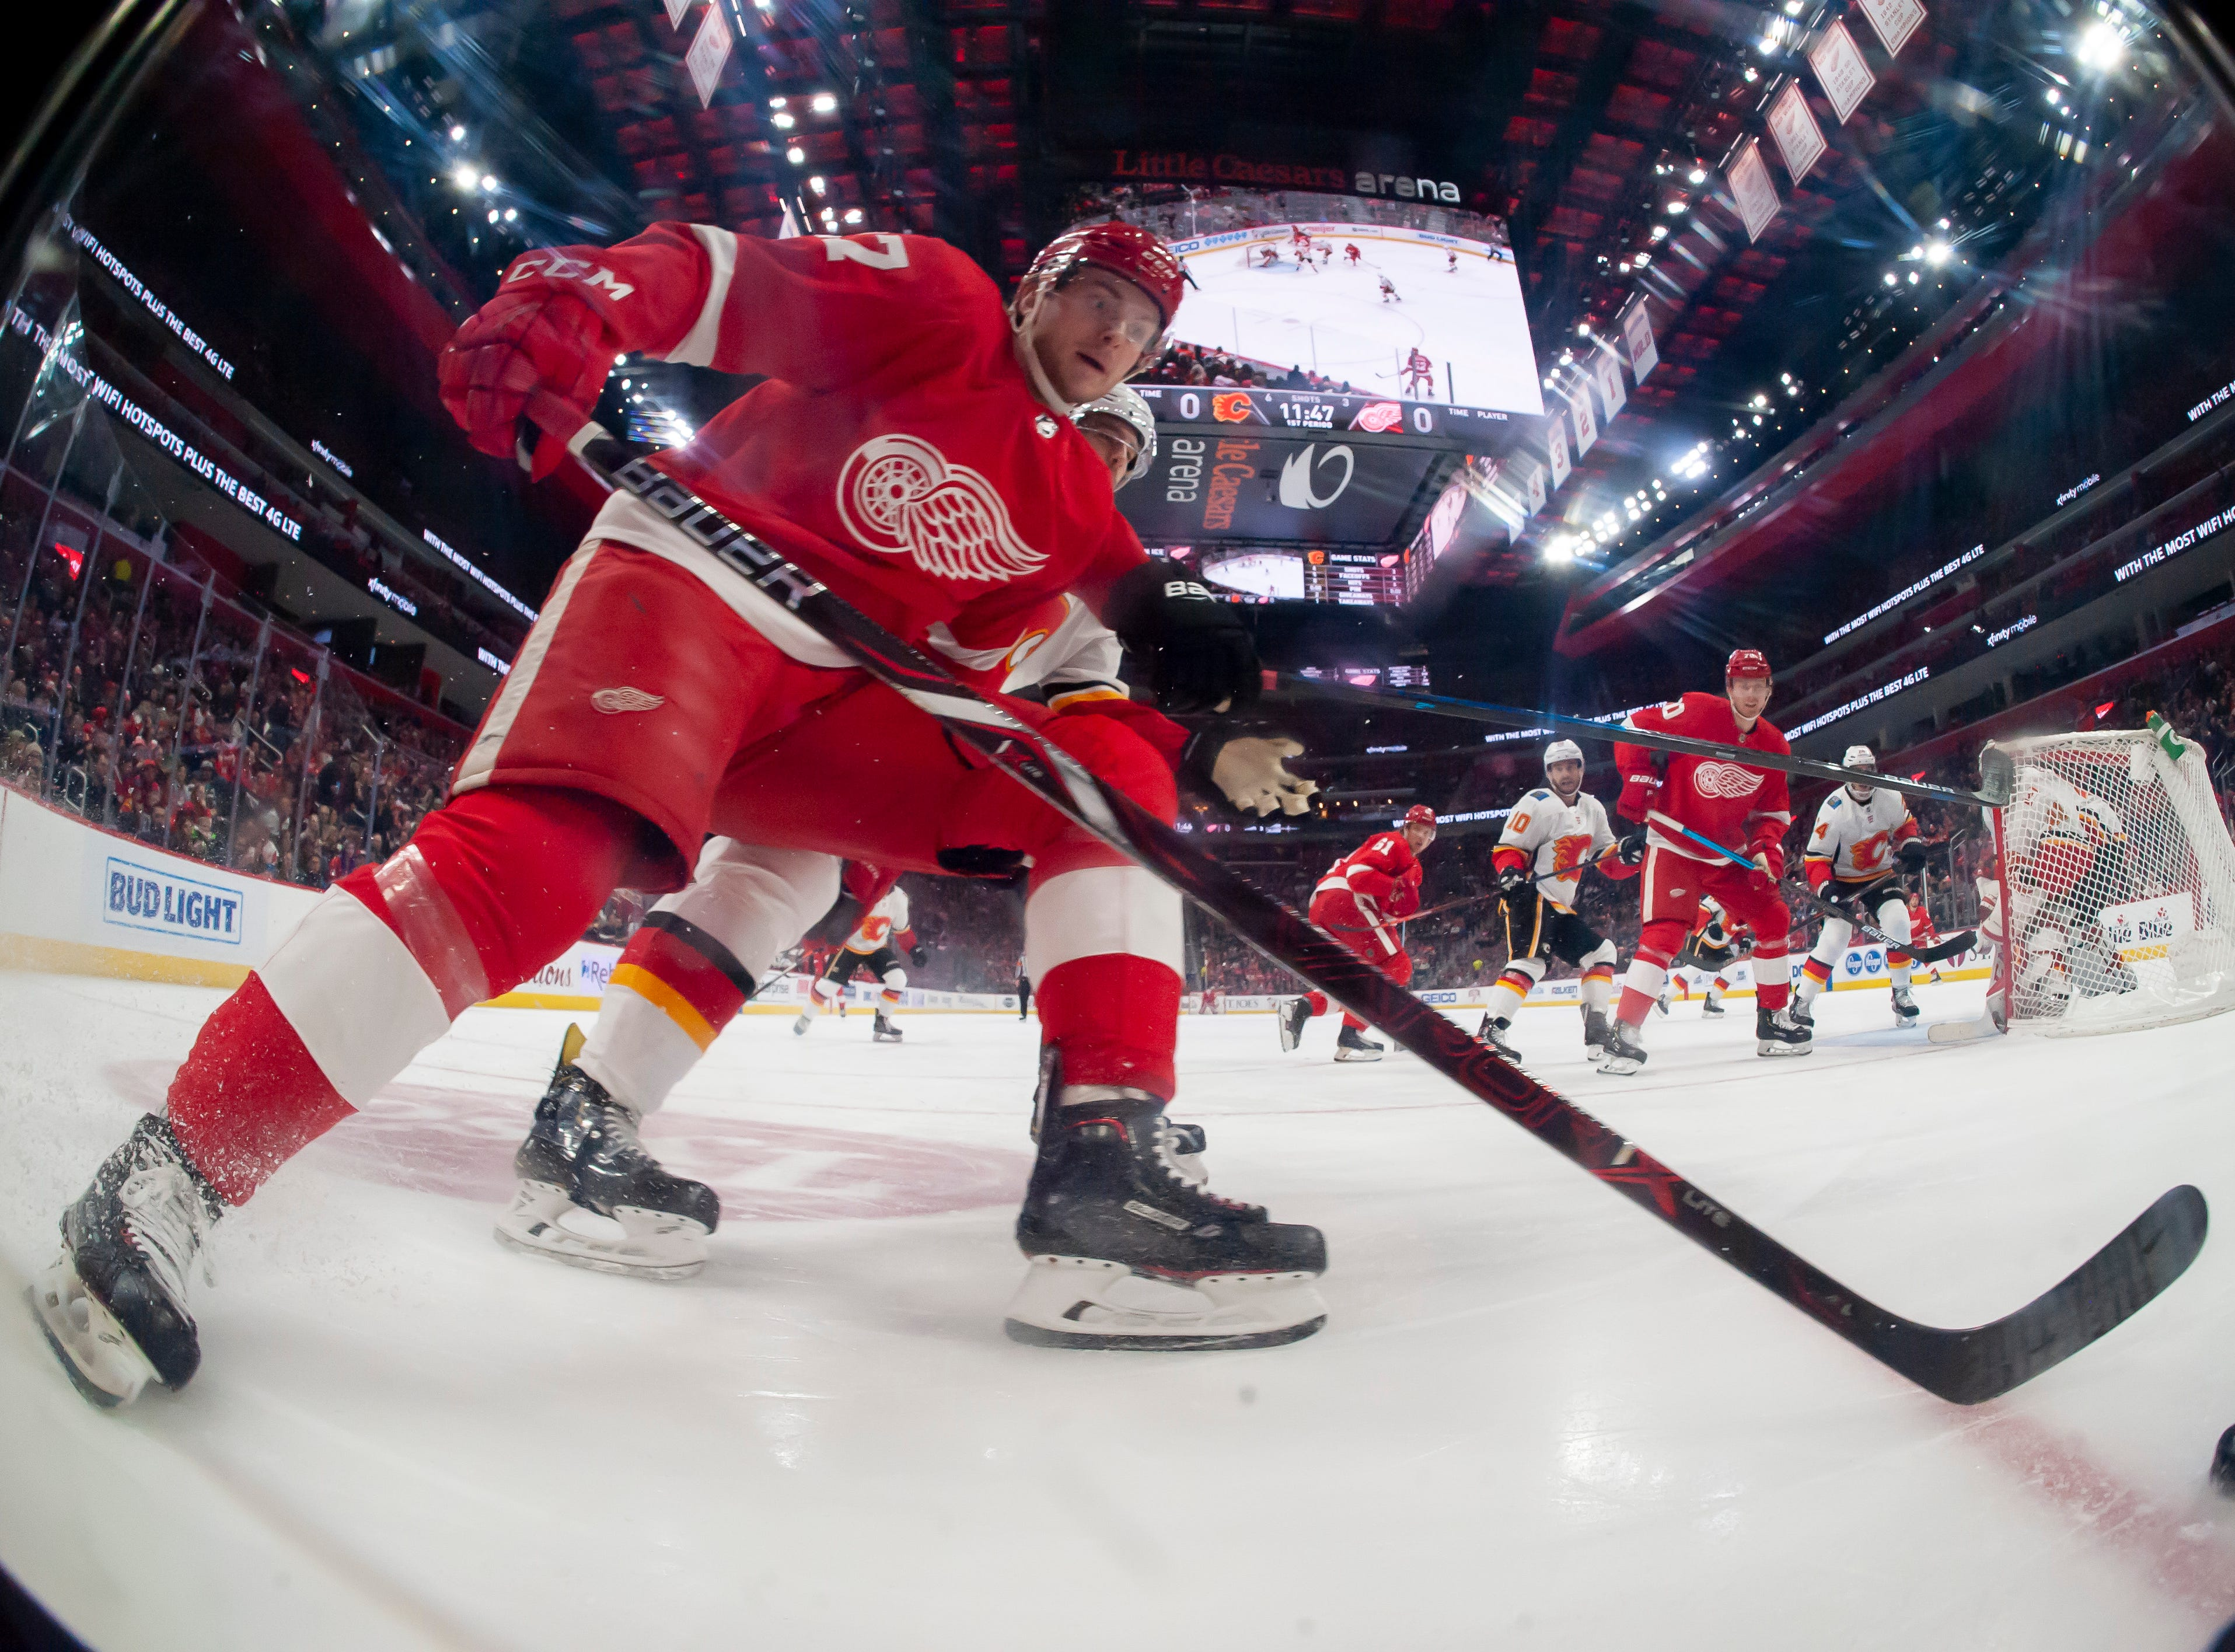 Detroit center Michael Rasmussen races the puck behind Calgary's net in the first period.